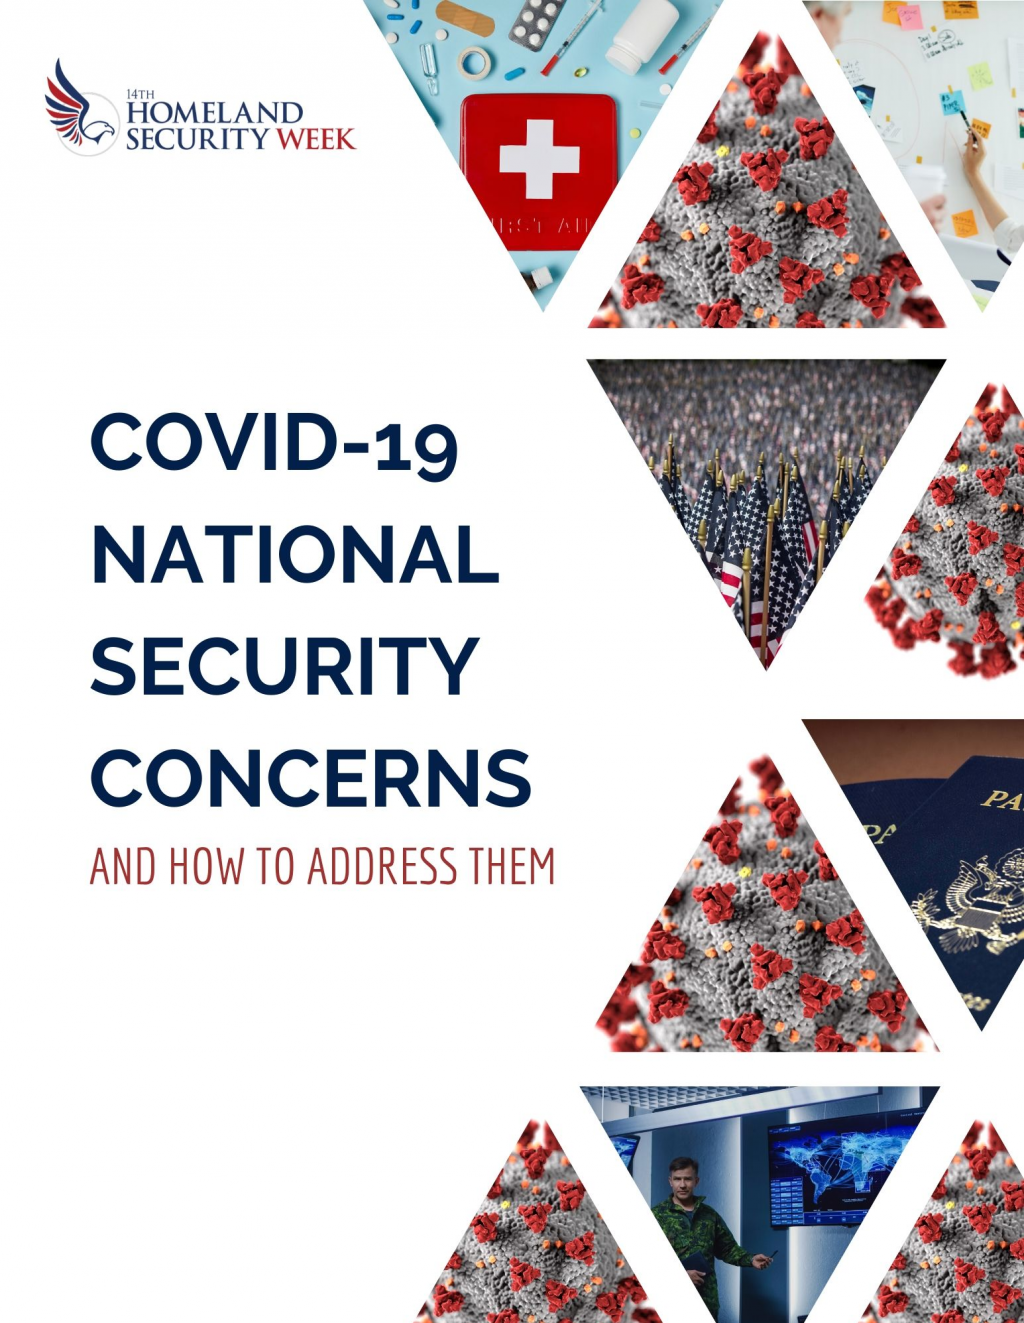 COVID-19 National Security Concerns and How to Address Them